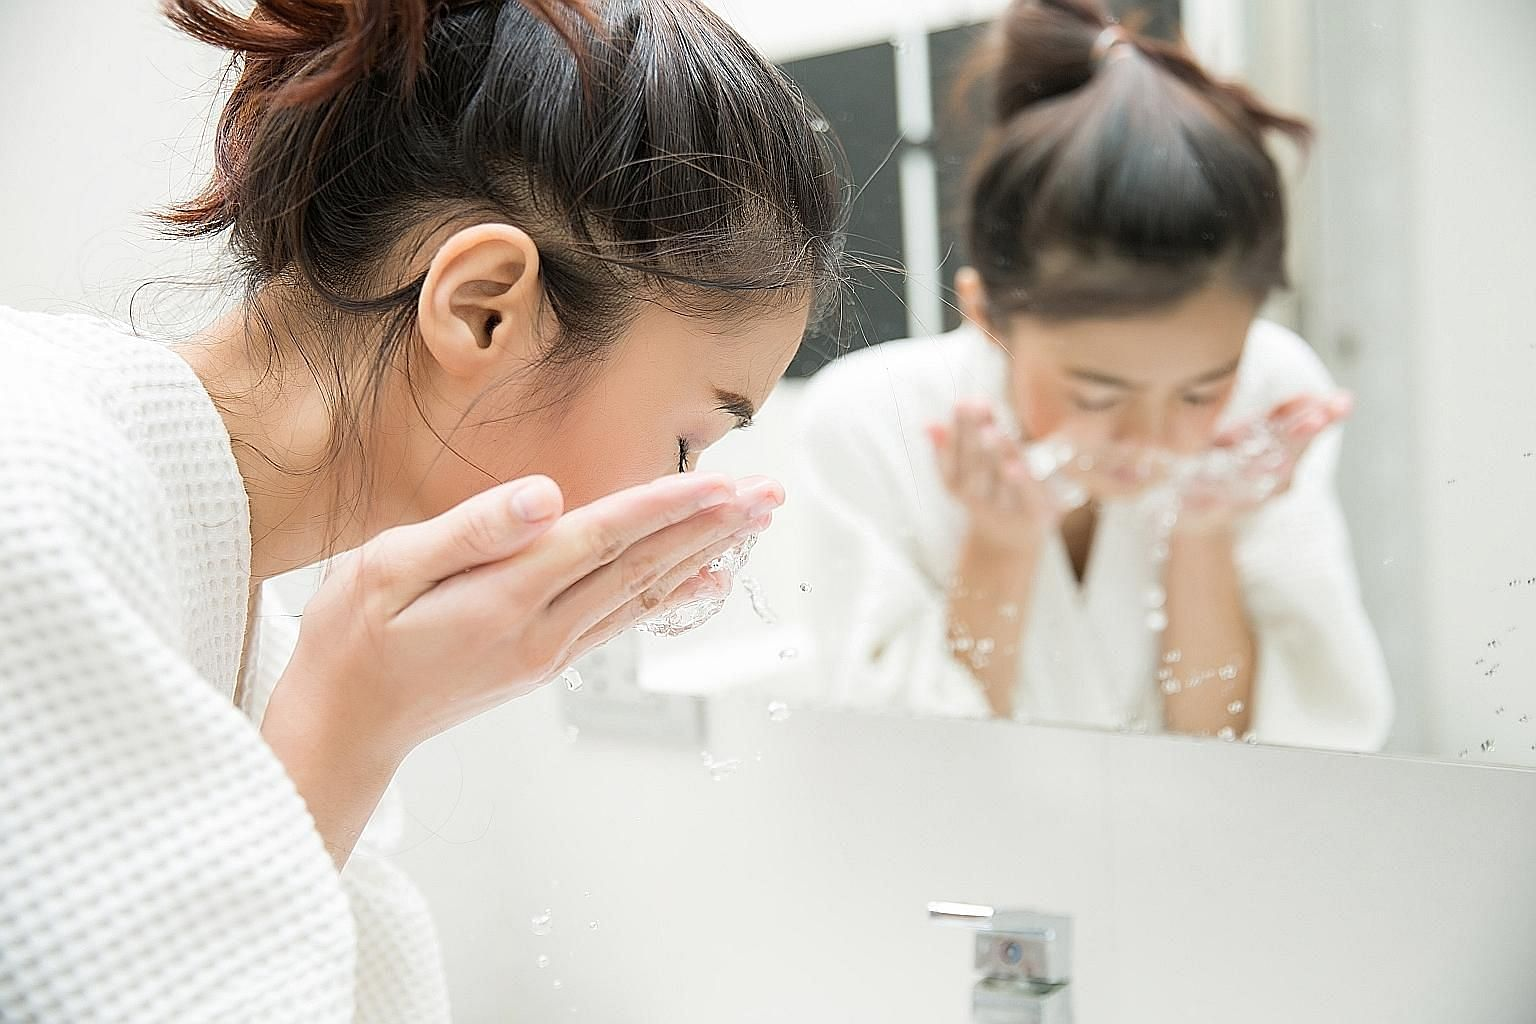 Cleansers fall into two categories: oil-based and water-based. If your skin is oily or prone to breakouts, aesthetic medical doctor Barbara Sturm suggests using a water-based gel or foam cleanser.